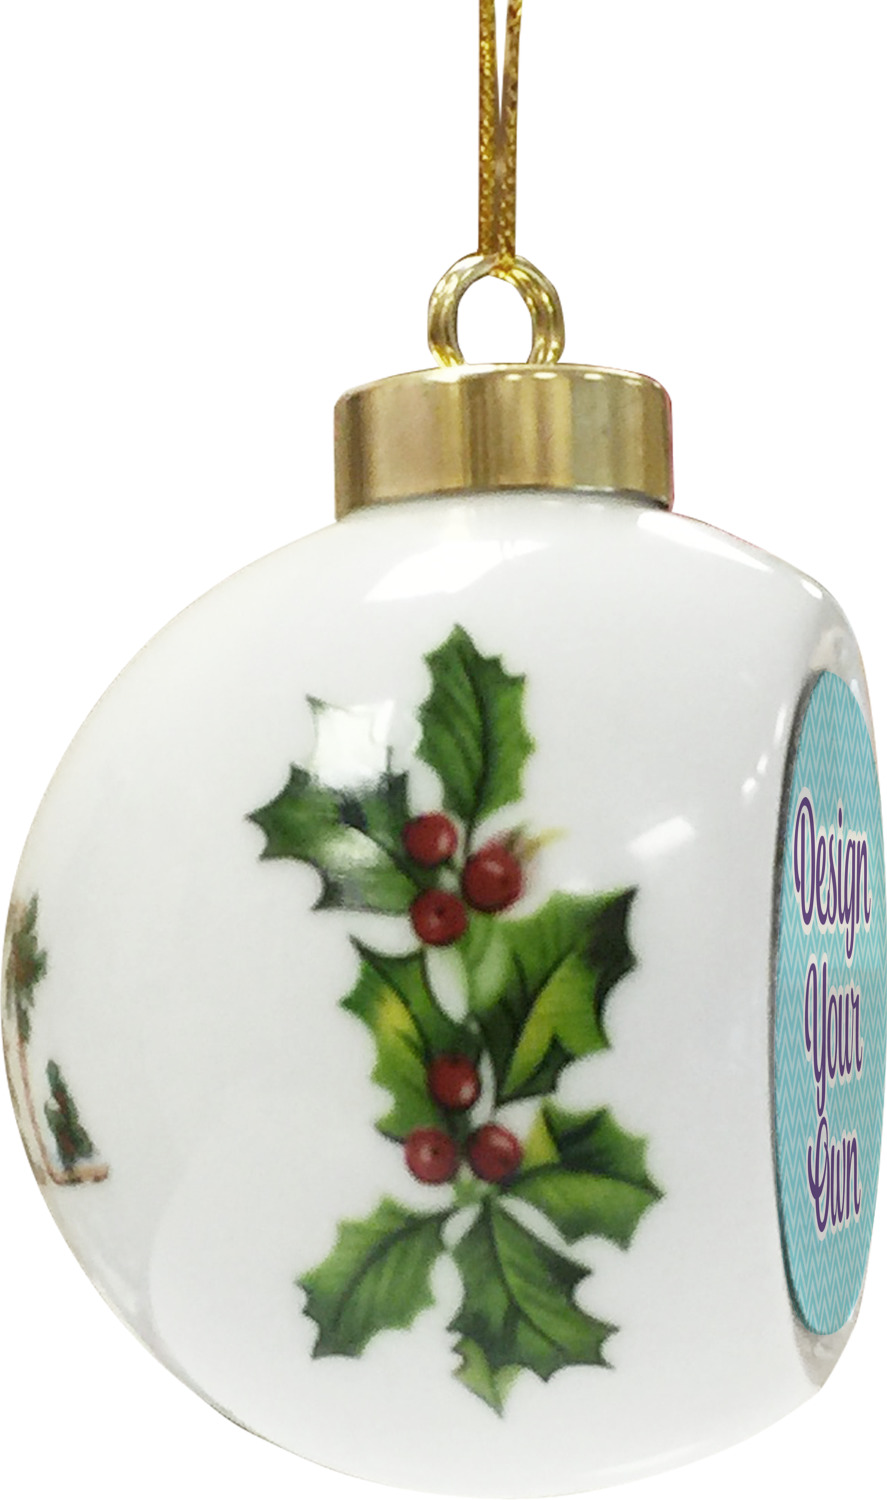 Design Your Own Personalized Ceramic Ball Ornament ...